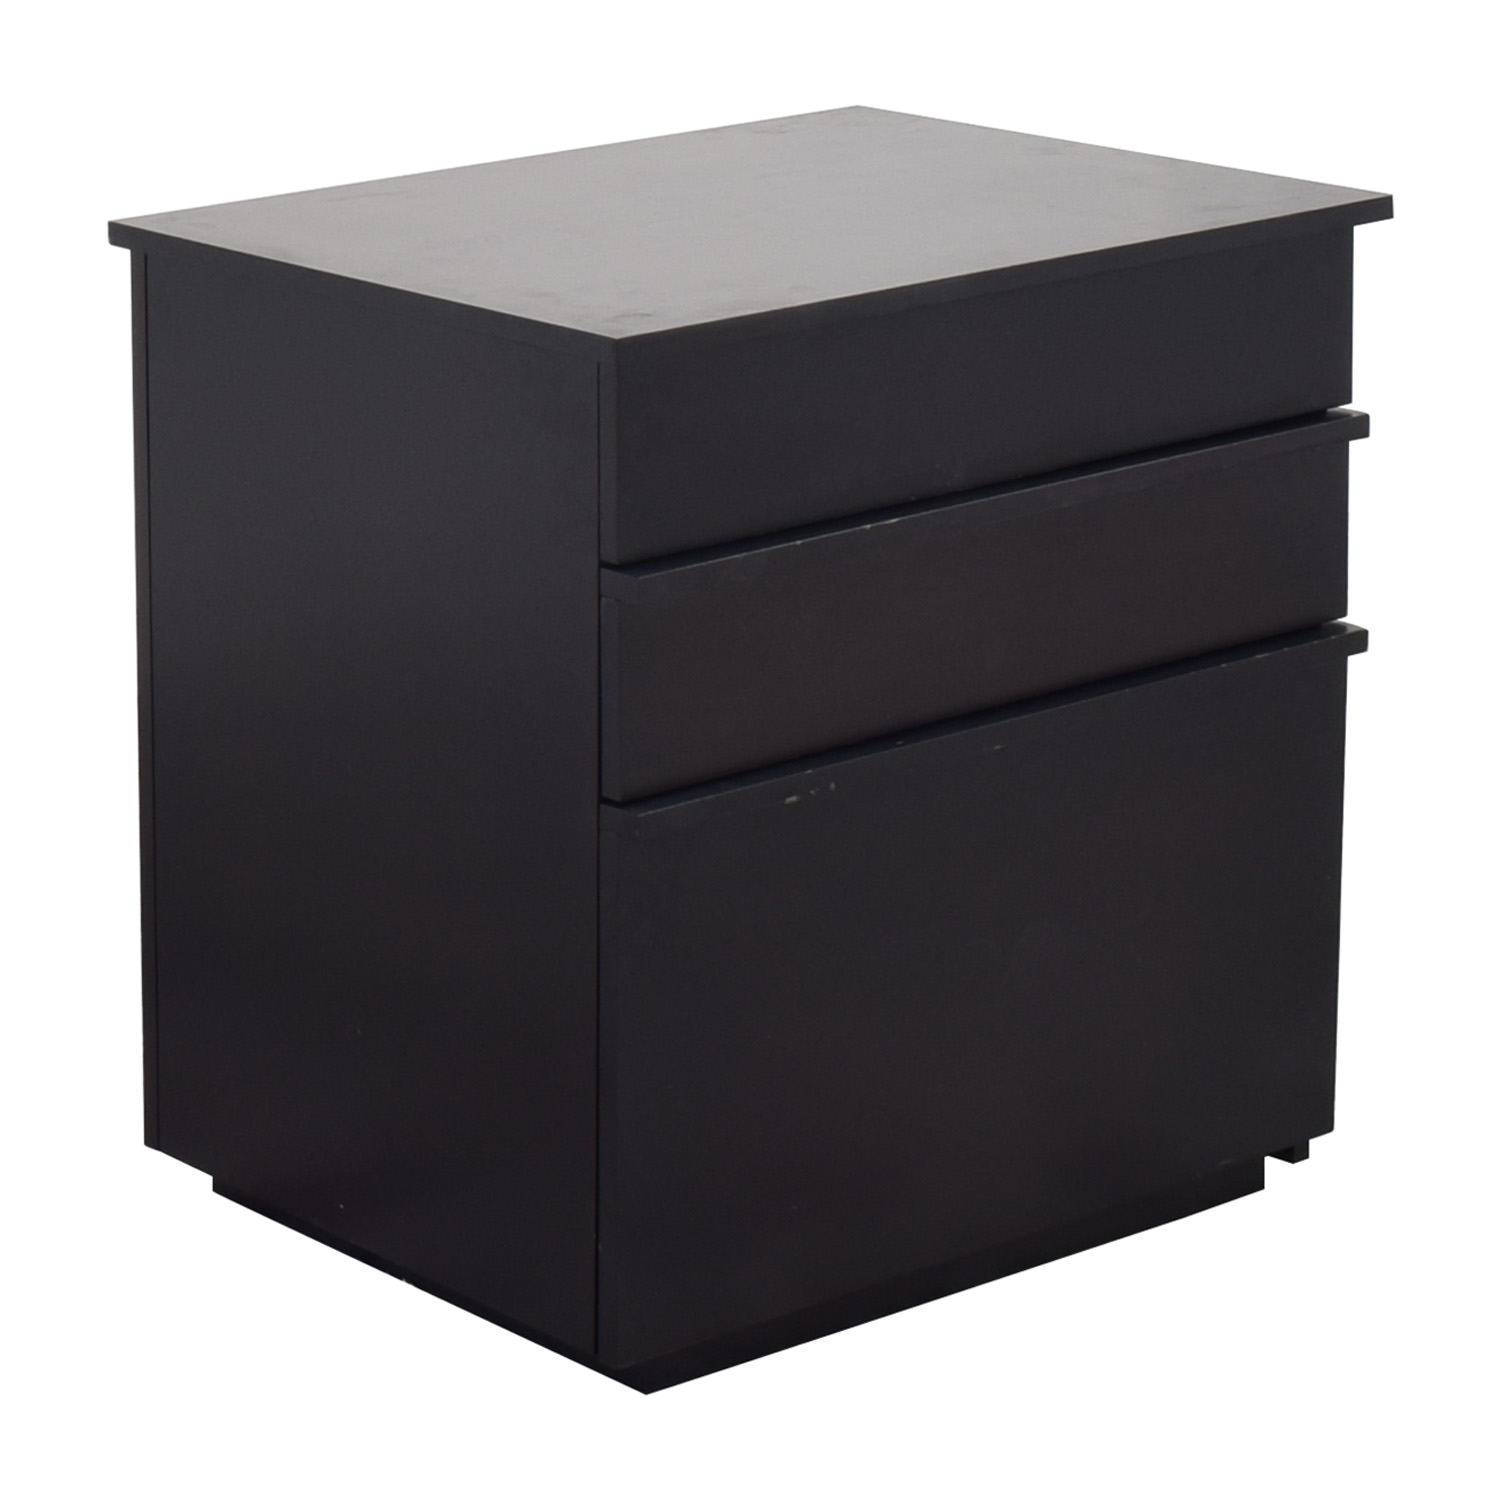 Crate & Barrel Crate & Barrel Roll Out Desk on sale